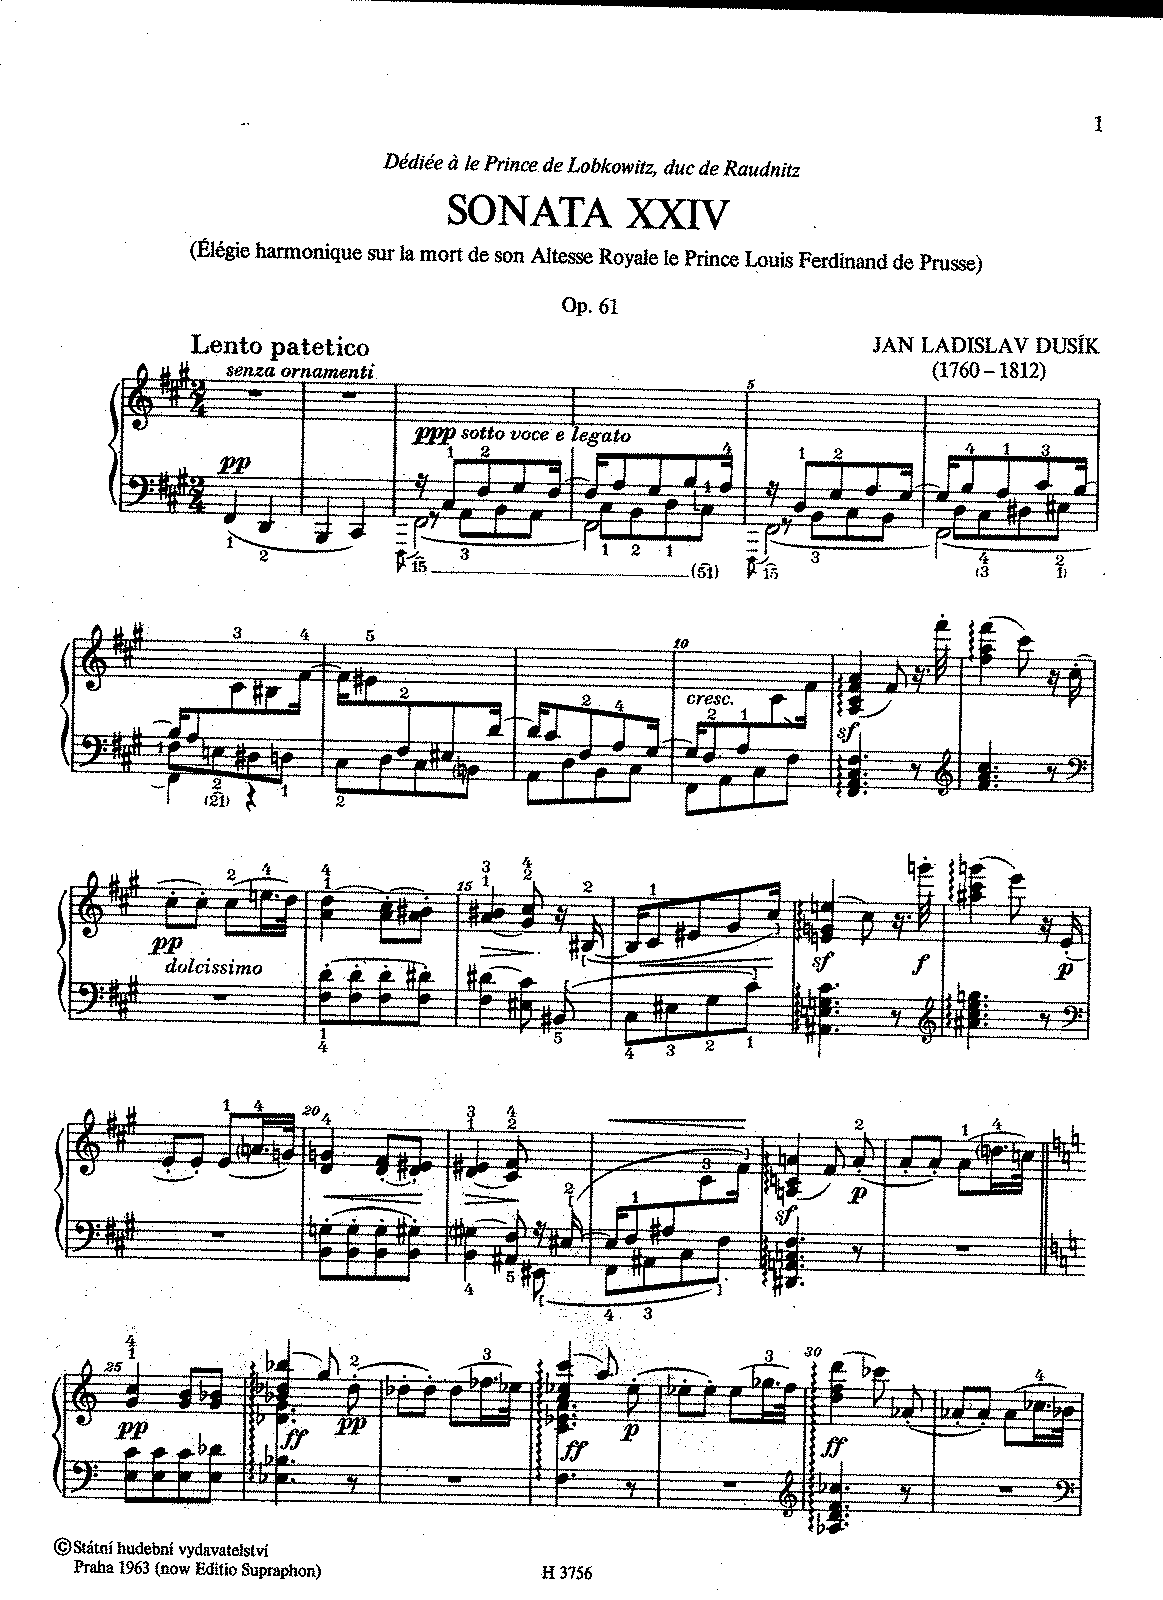 Dussek op61 Sonate 24 in fsharp — Elegie harmonique.pdf